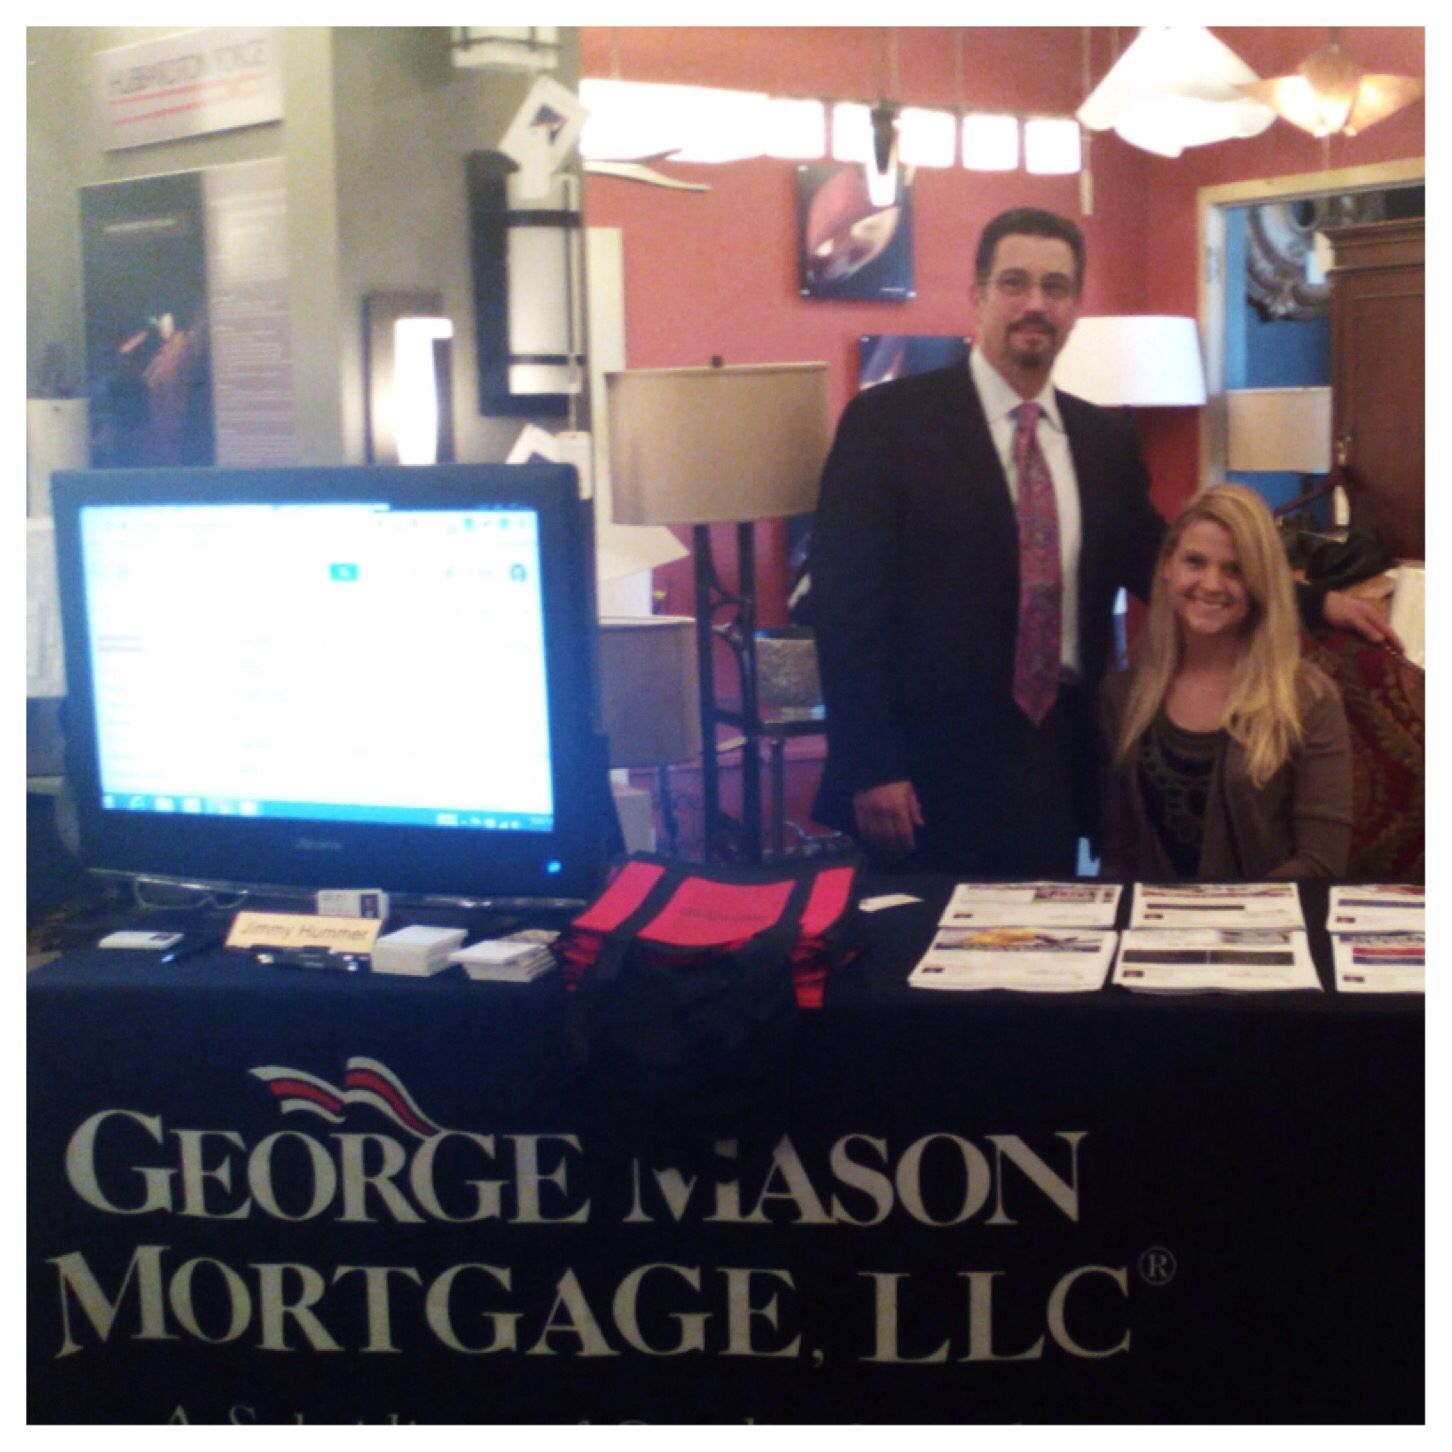 The wonderful Jimmy Hummer senior loan officer at George Mason Mortgage during the BNI  sc 1 st  Pinterest & The wonderful Jimmy Hummer senior loan officer at George Mason ...